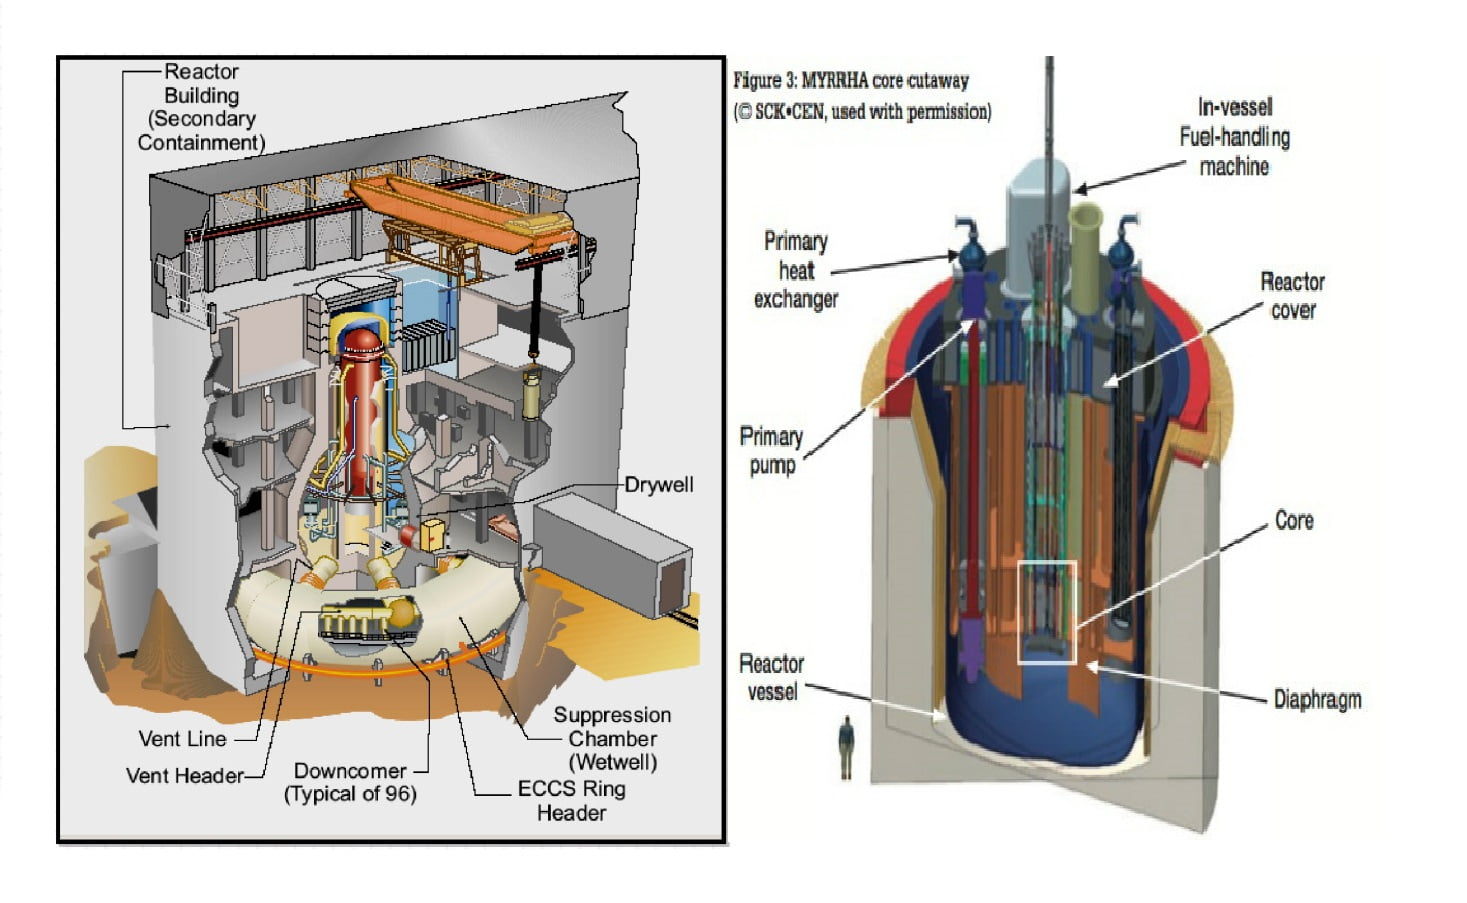 hight resolution of a nuclear reactor itself is the heart of a nuclear power plant much like a car has combustion chambers inside of its engine which includes many more